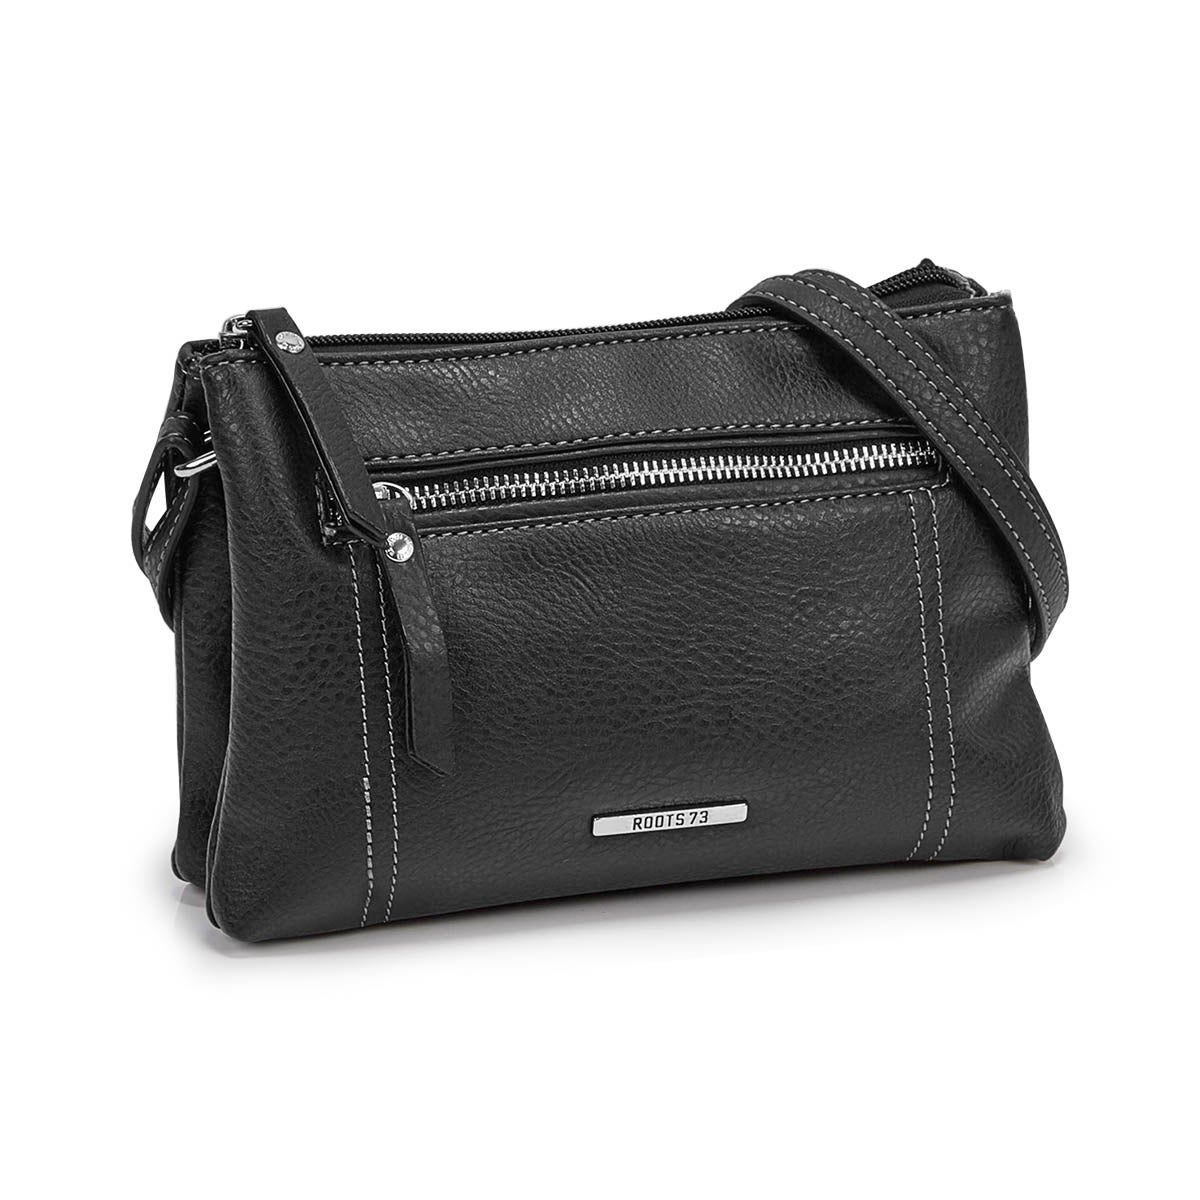 Women's R5196 black mini cross body bag